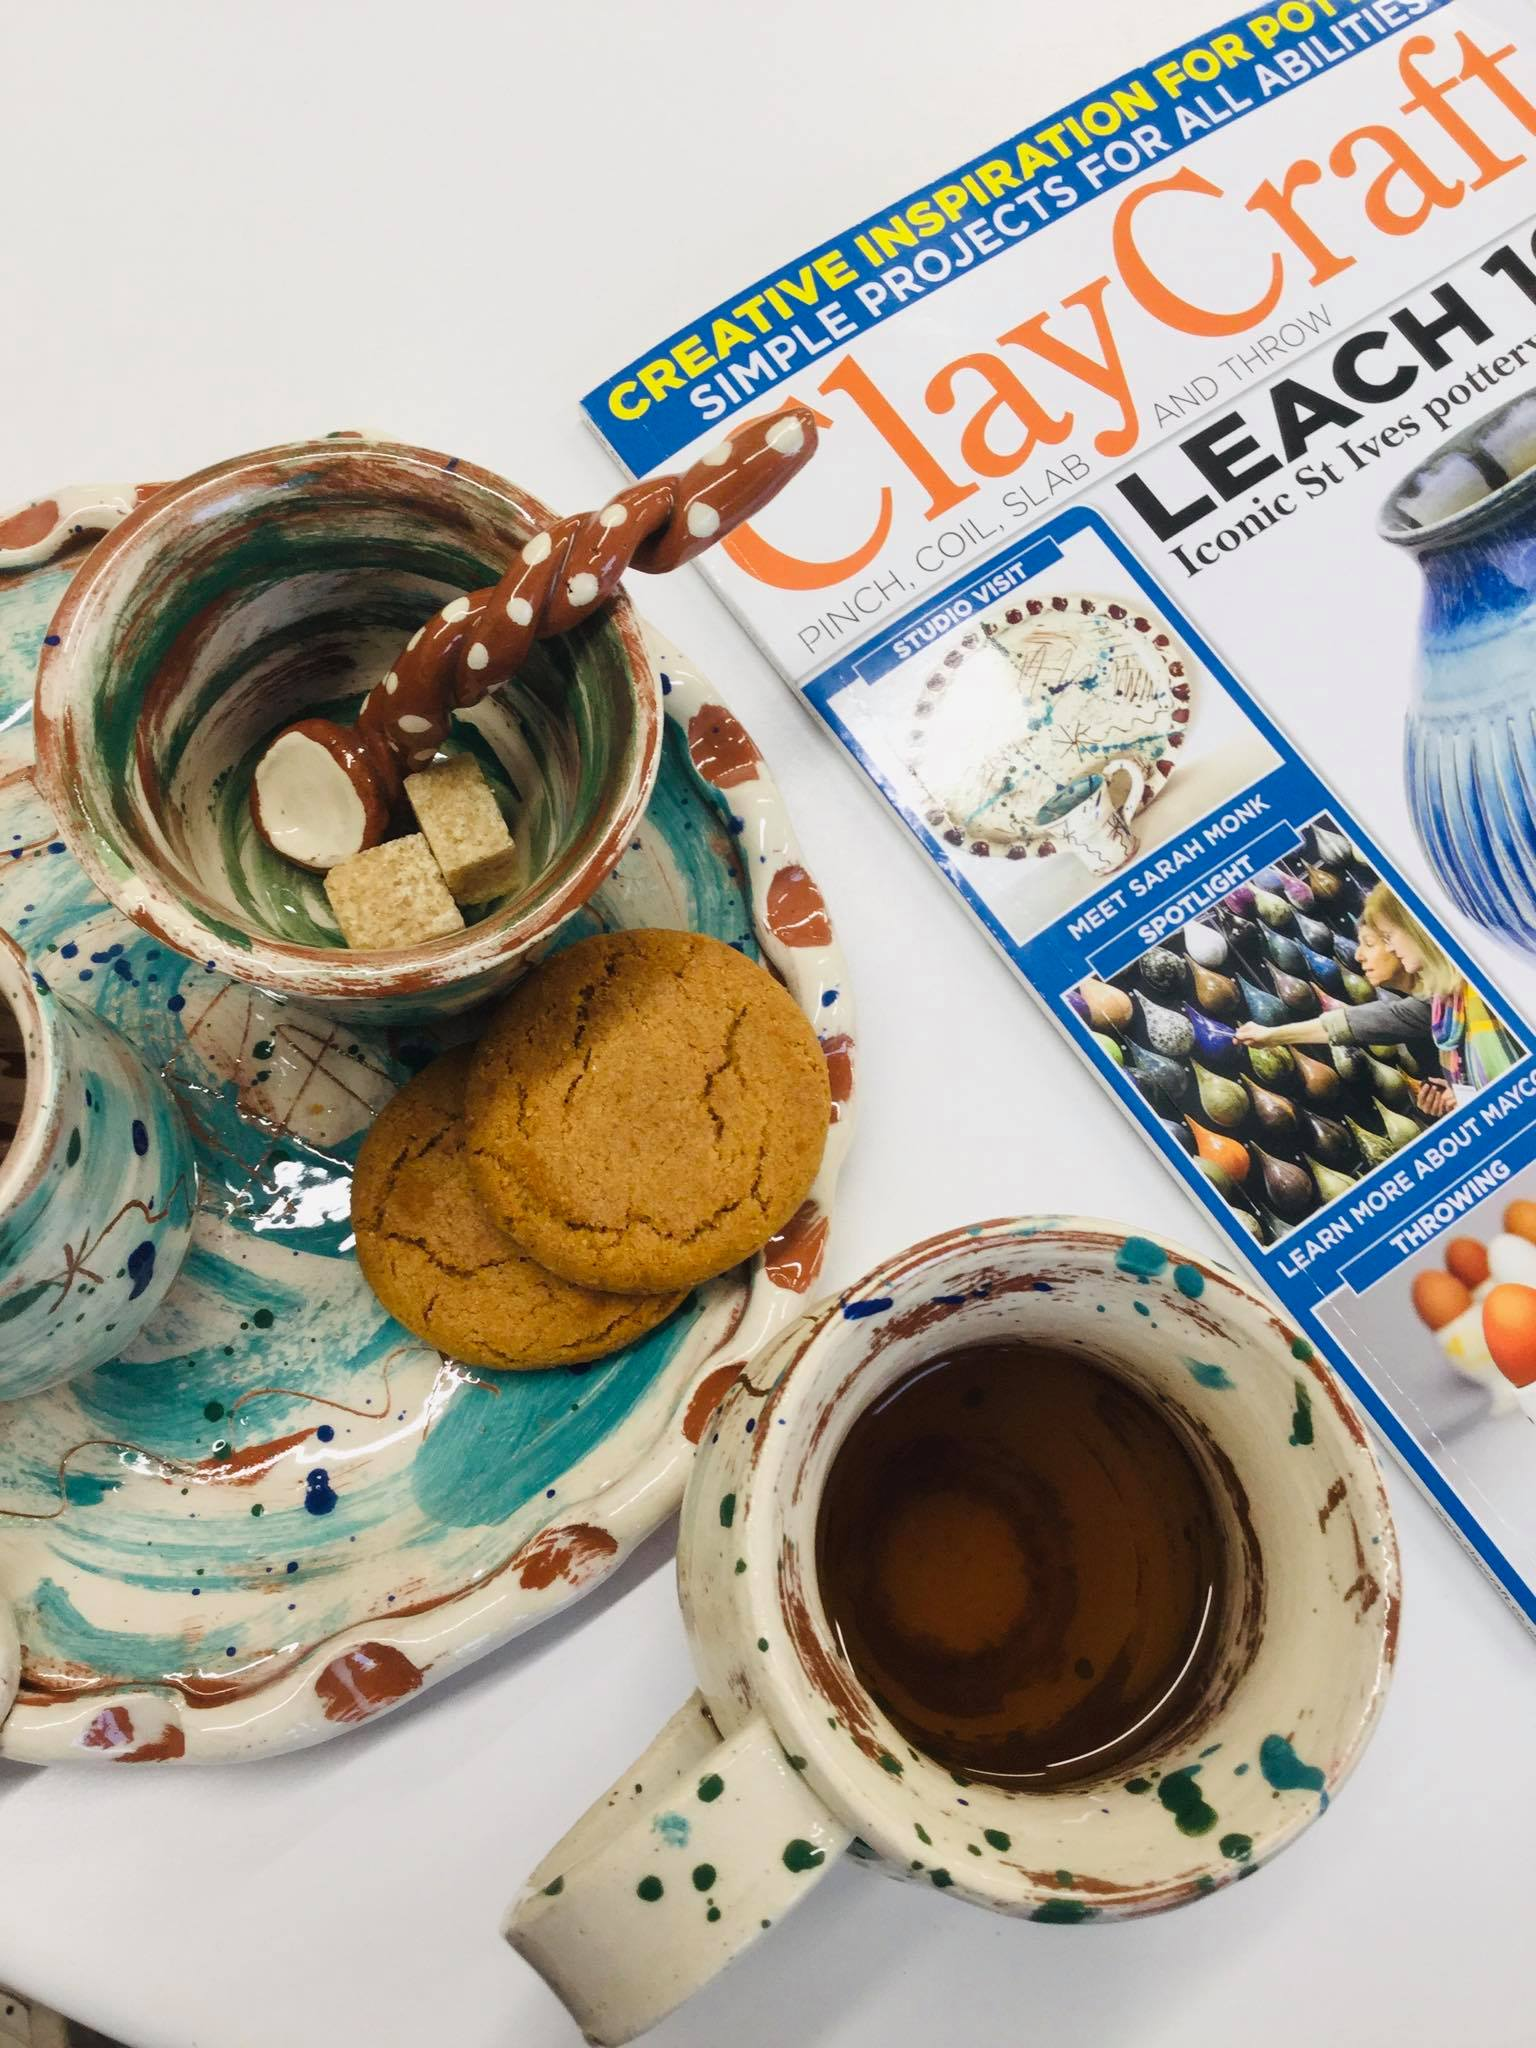 slipware cup handmade spoon and biscuit plate by sarah monk ceramics plus clay craft magazine font cover